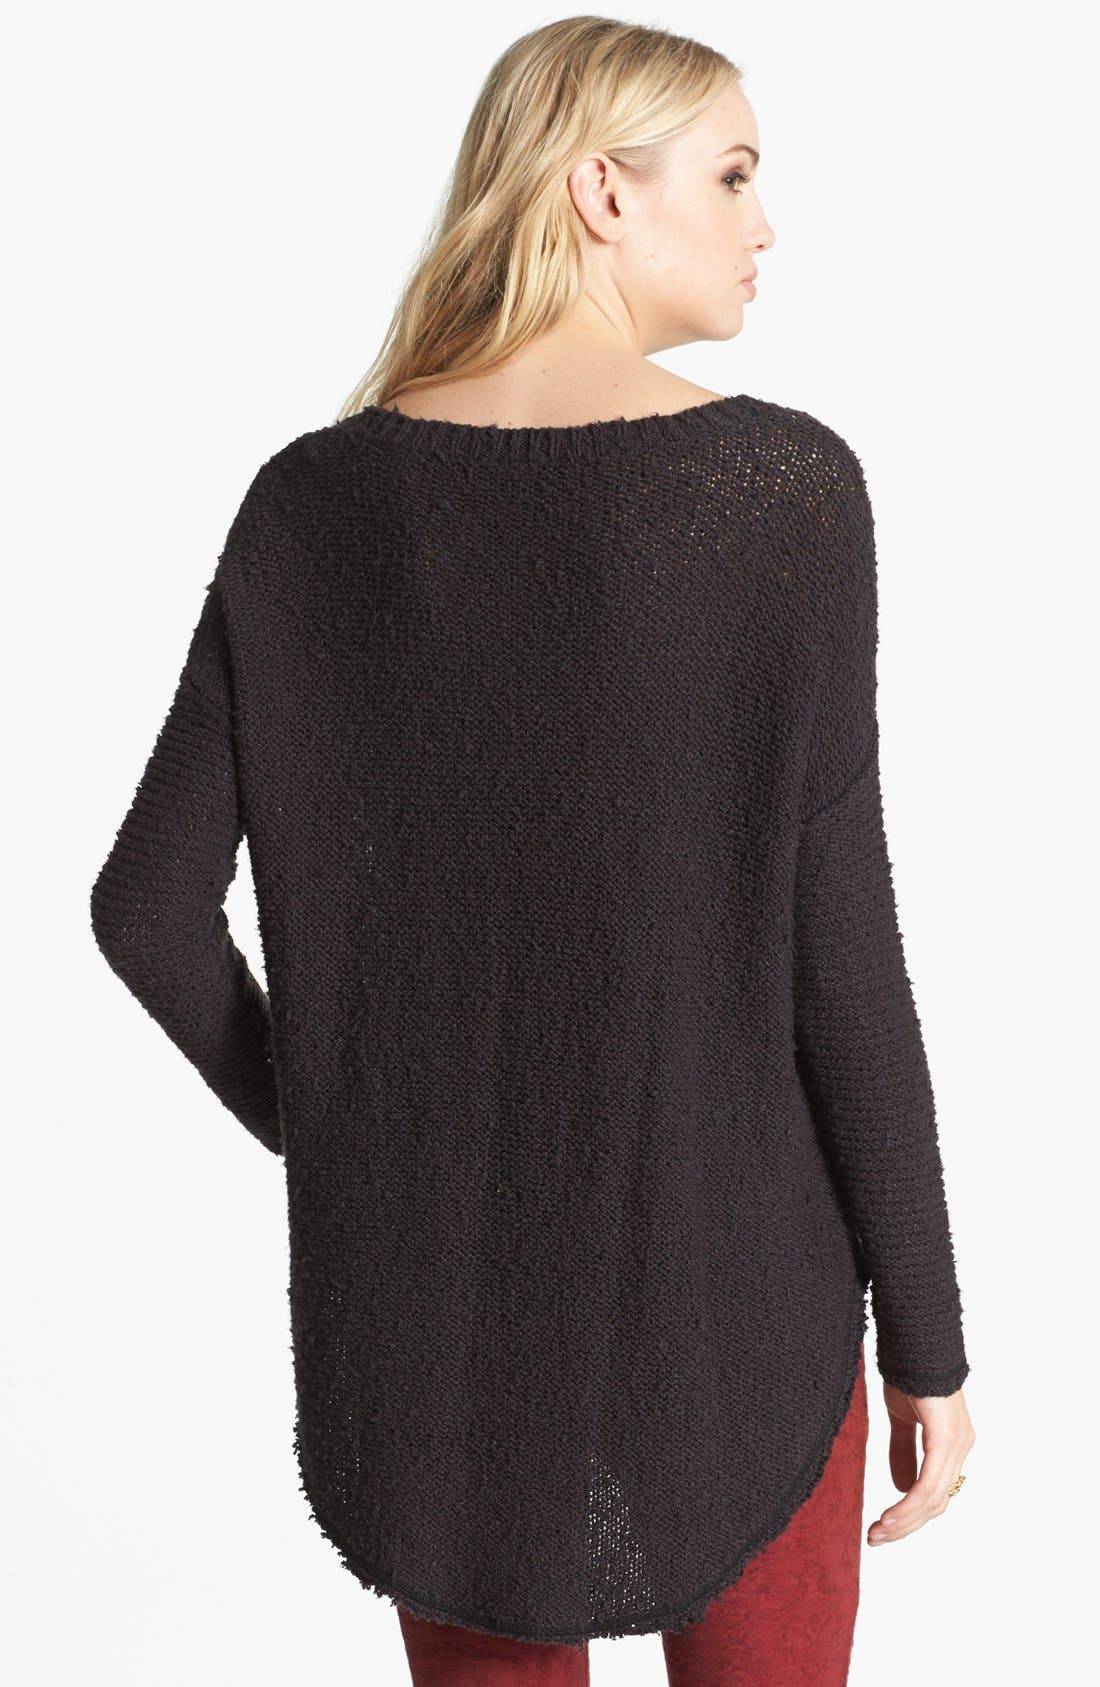 FREE PEOPLE, 'Cross My Heart' High/Low Sweater, Alternate thumbnail 3, color, 001